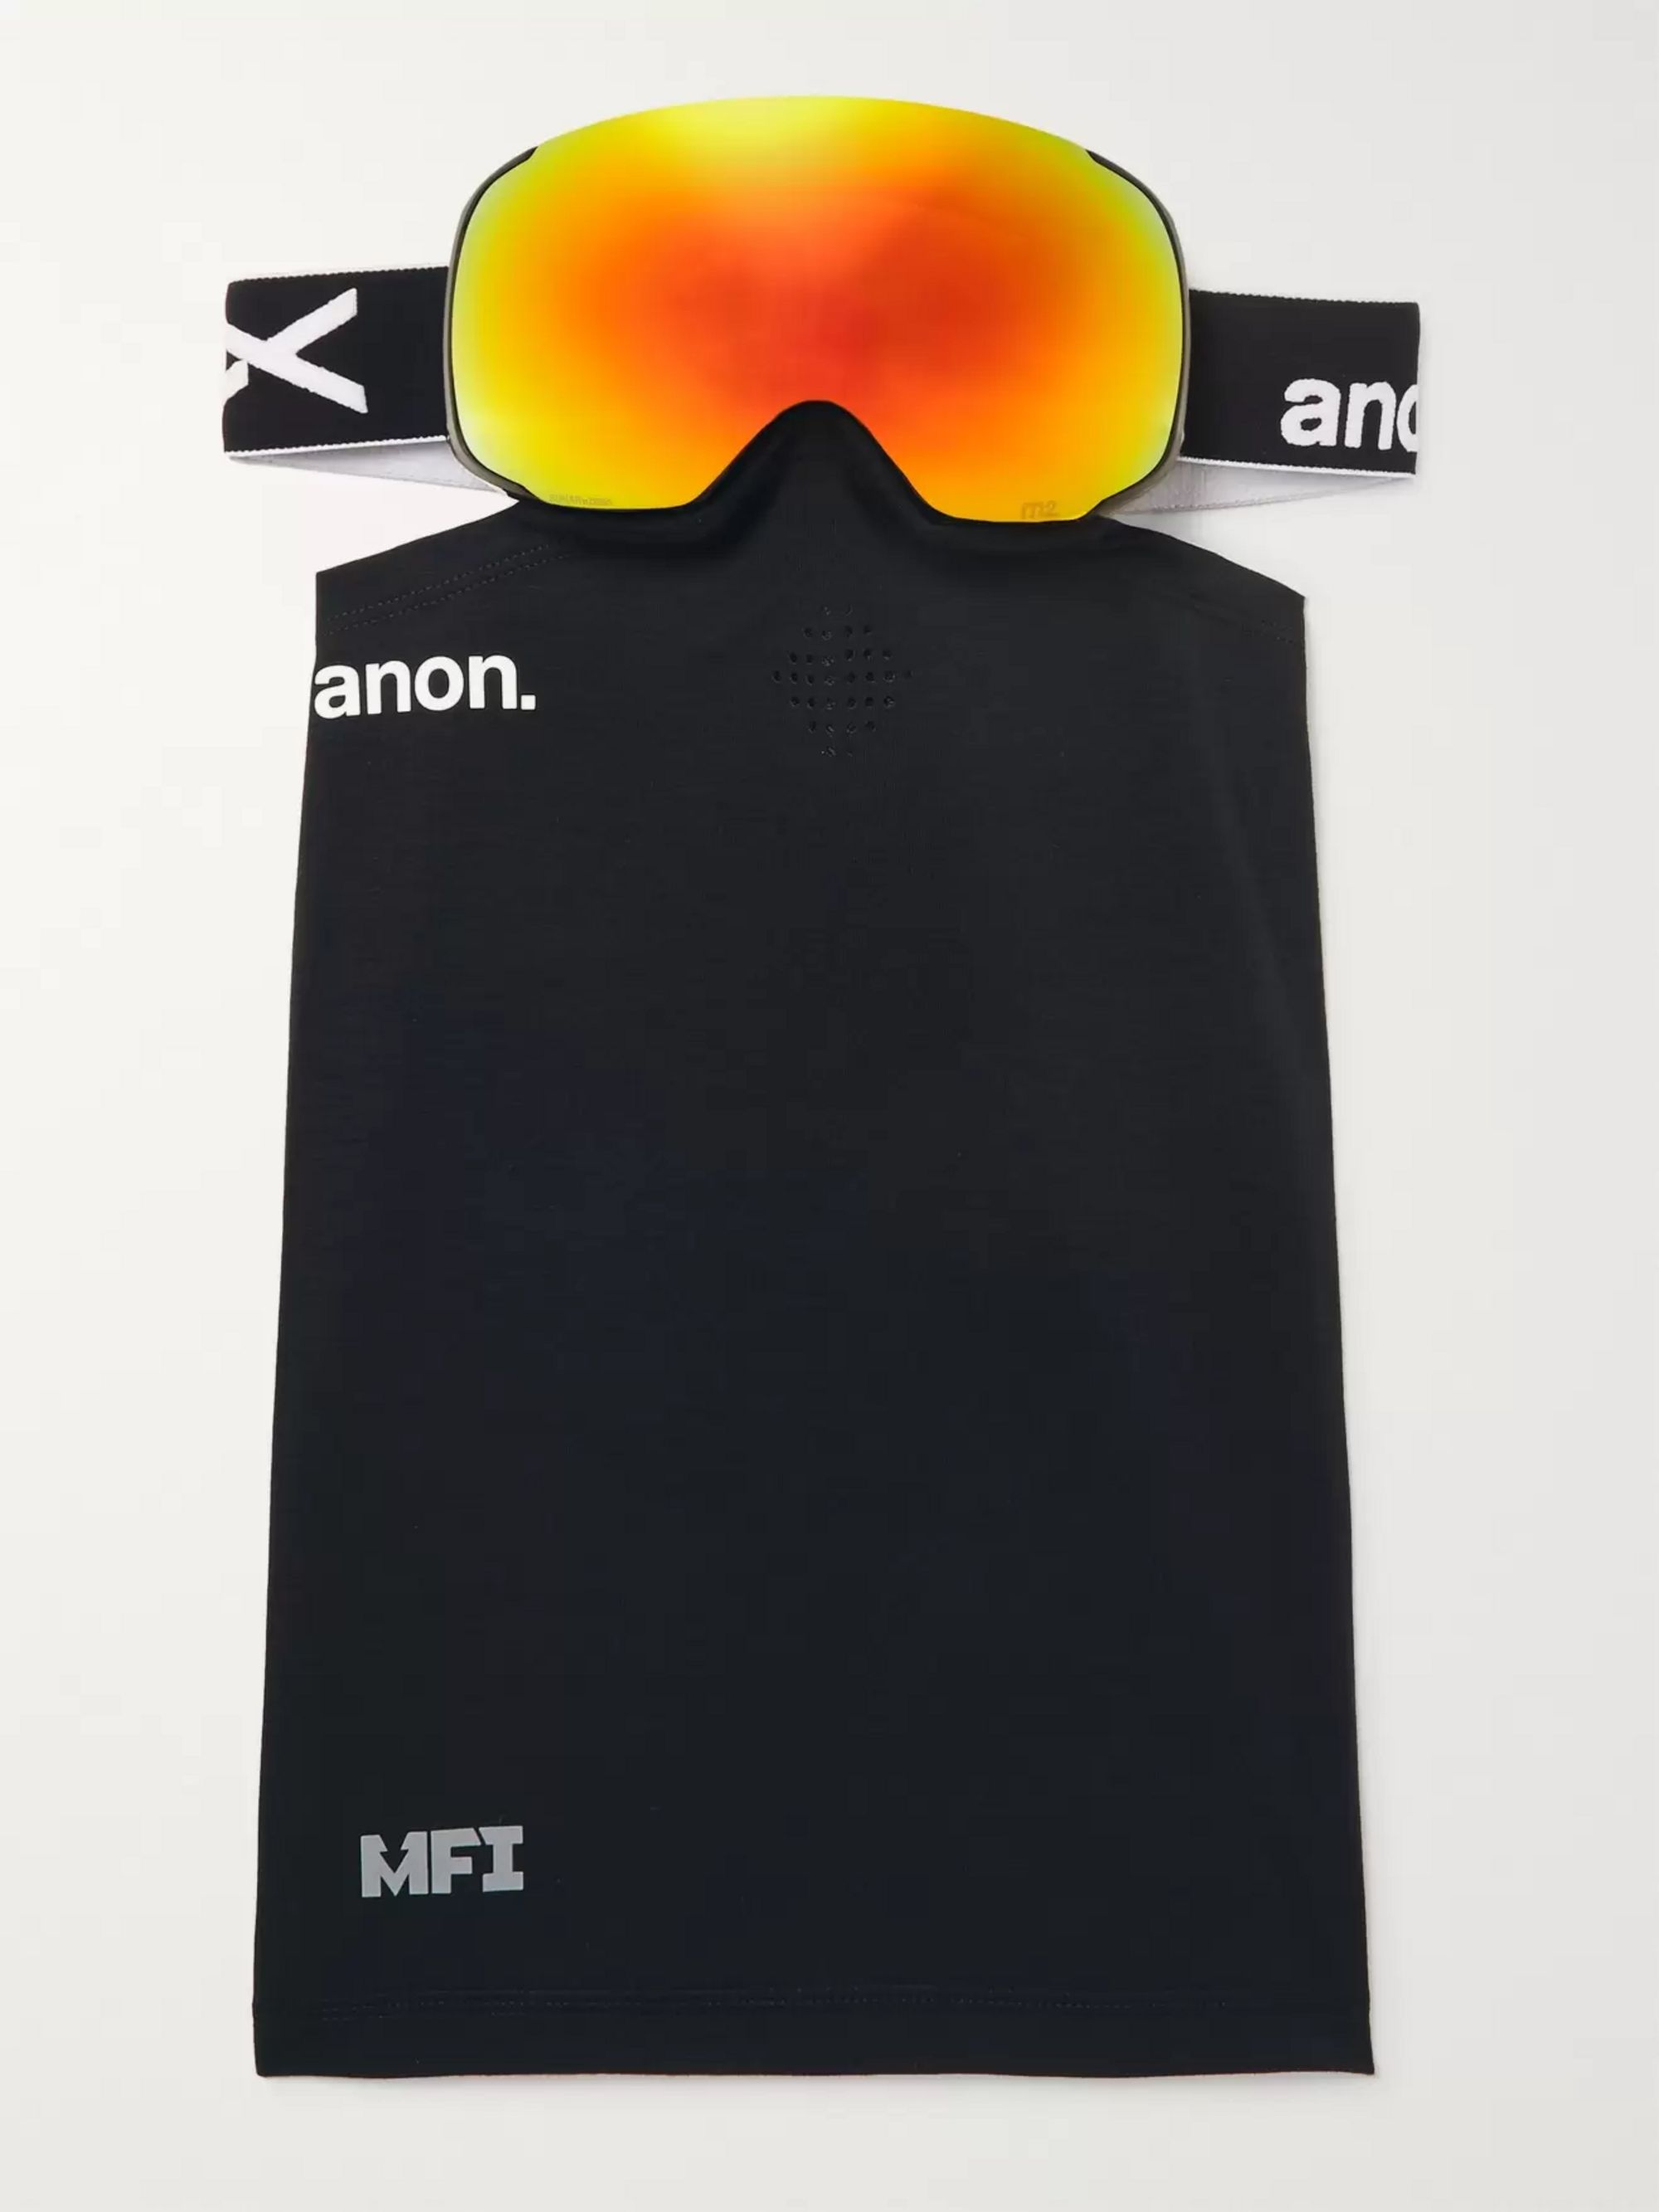 Anon M2 Ski Goggles and Stretch-Jersey Face Mask